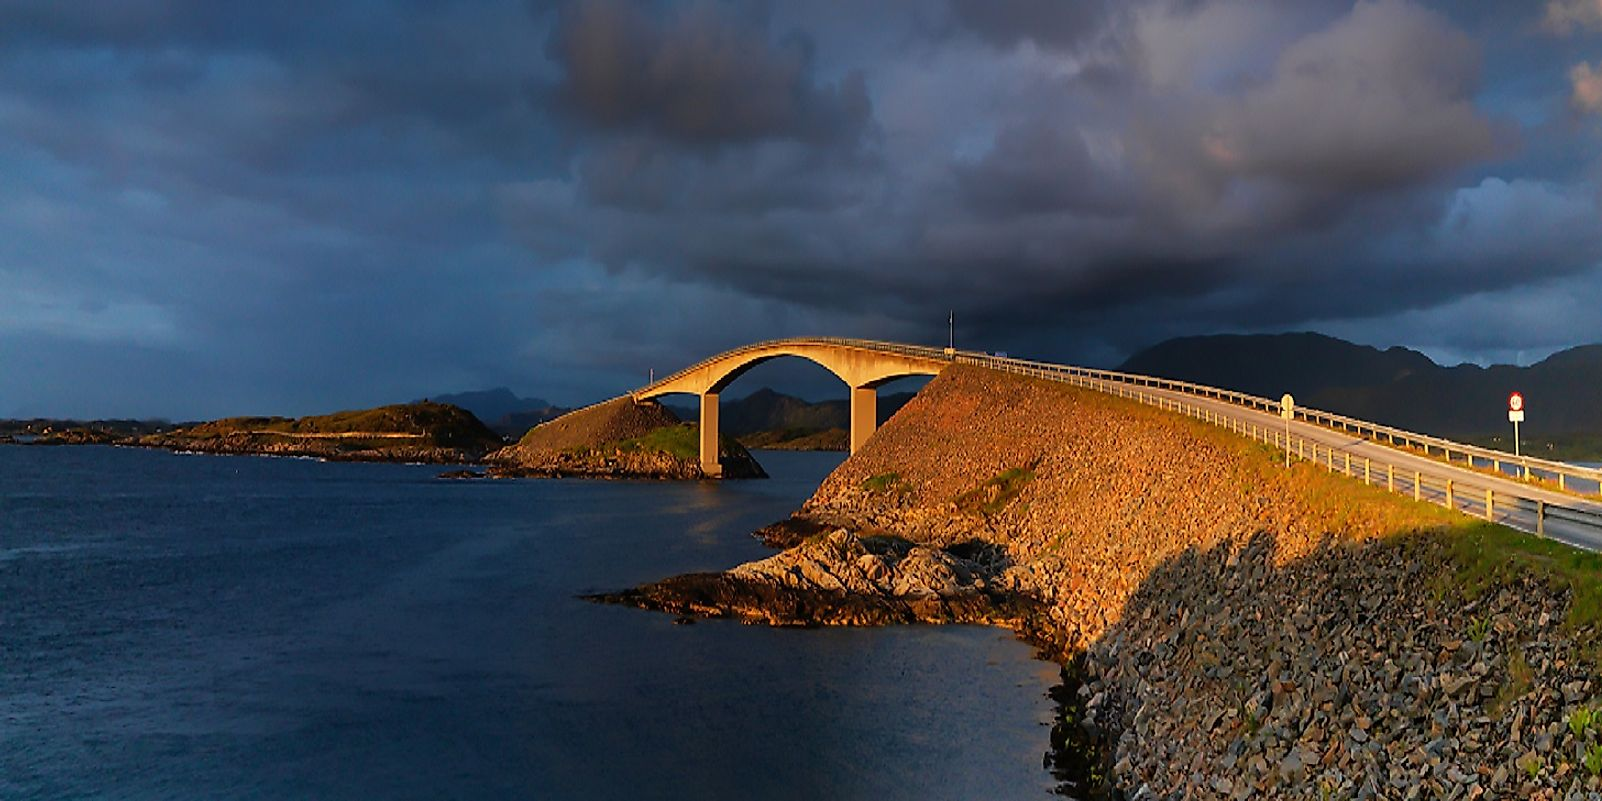 Norway's Atlantic Ocean Road has an abundance of unique bridges, causeways, and winding twists and turns.